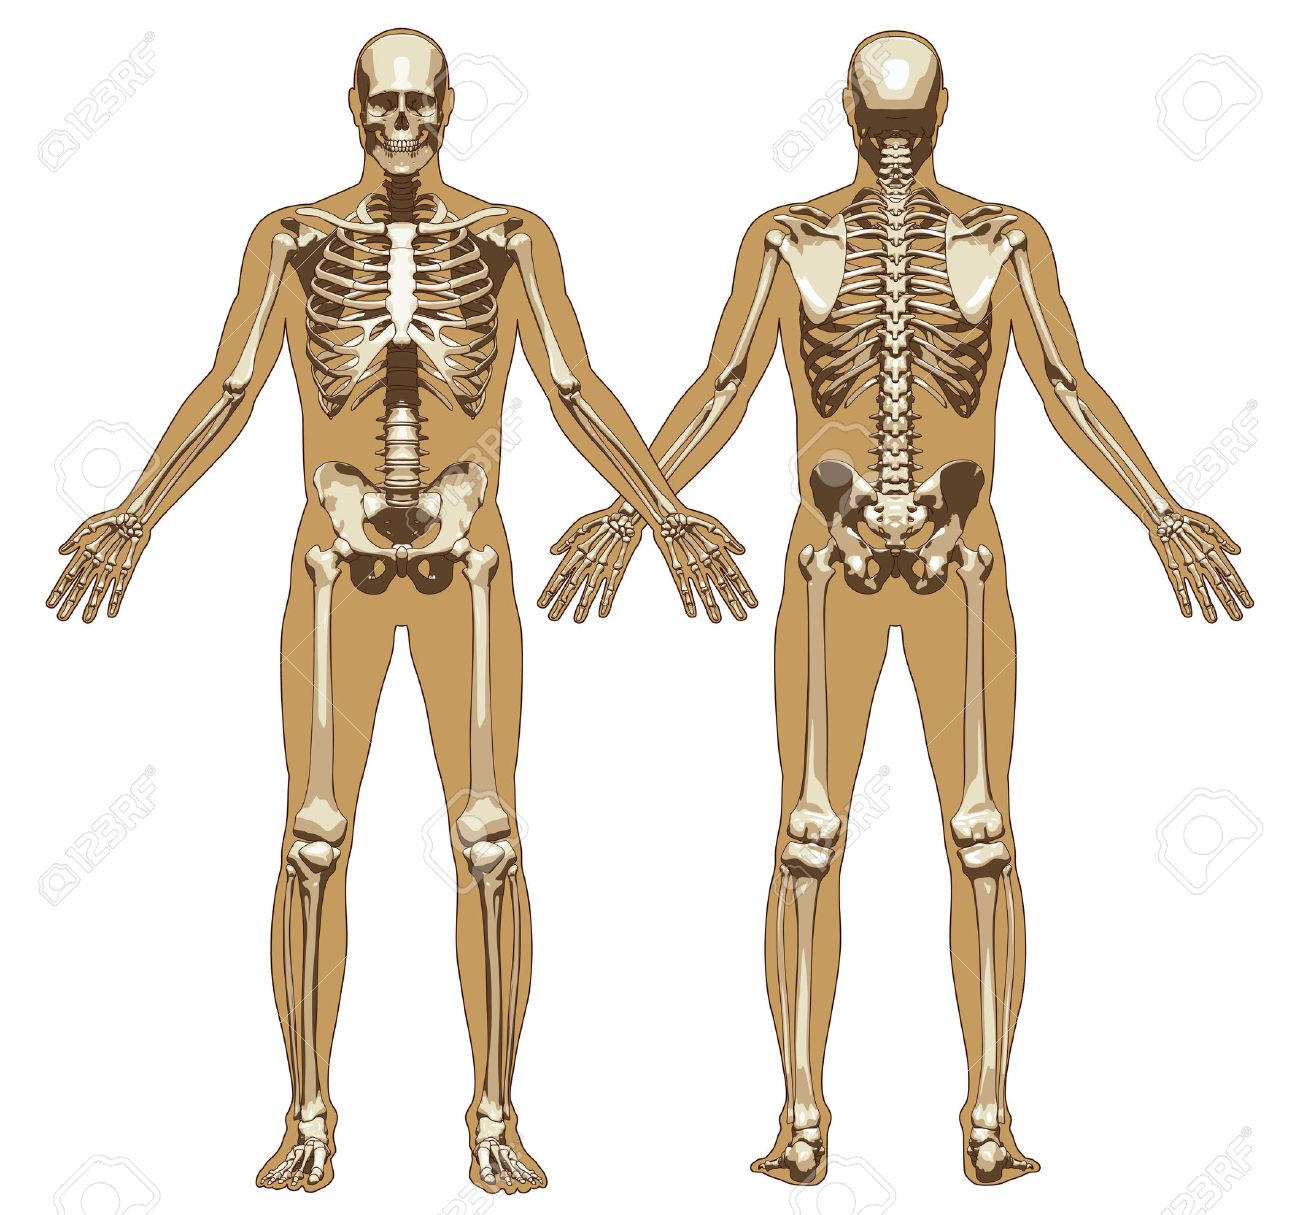 Human skeleton stock photos royalty free business images human skeleton on flat body background front and back view vector illustration illustration ccuart Image collections